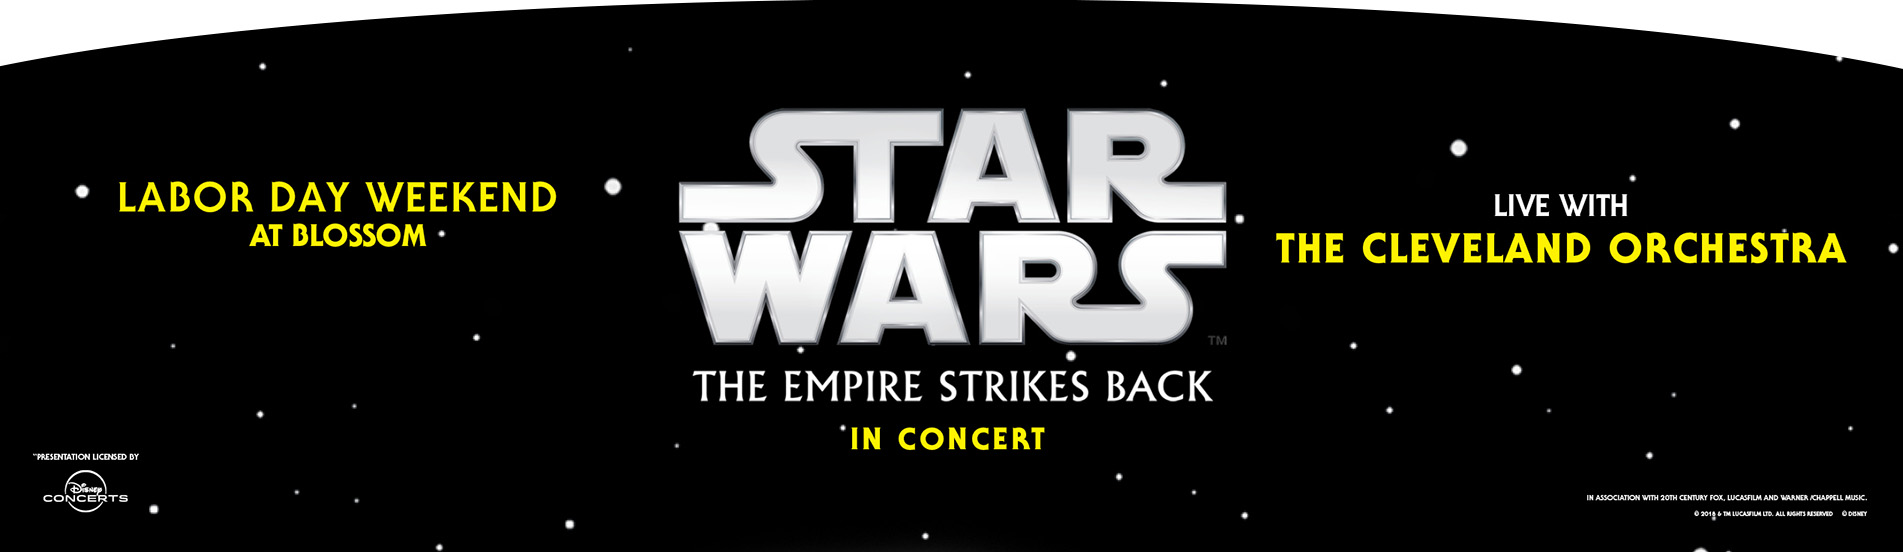 Star Wars' The Empire Strikes Back - Film With Live Orchestra at Blossom Music Center